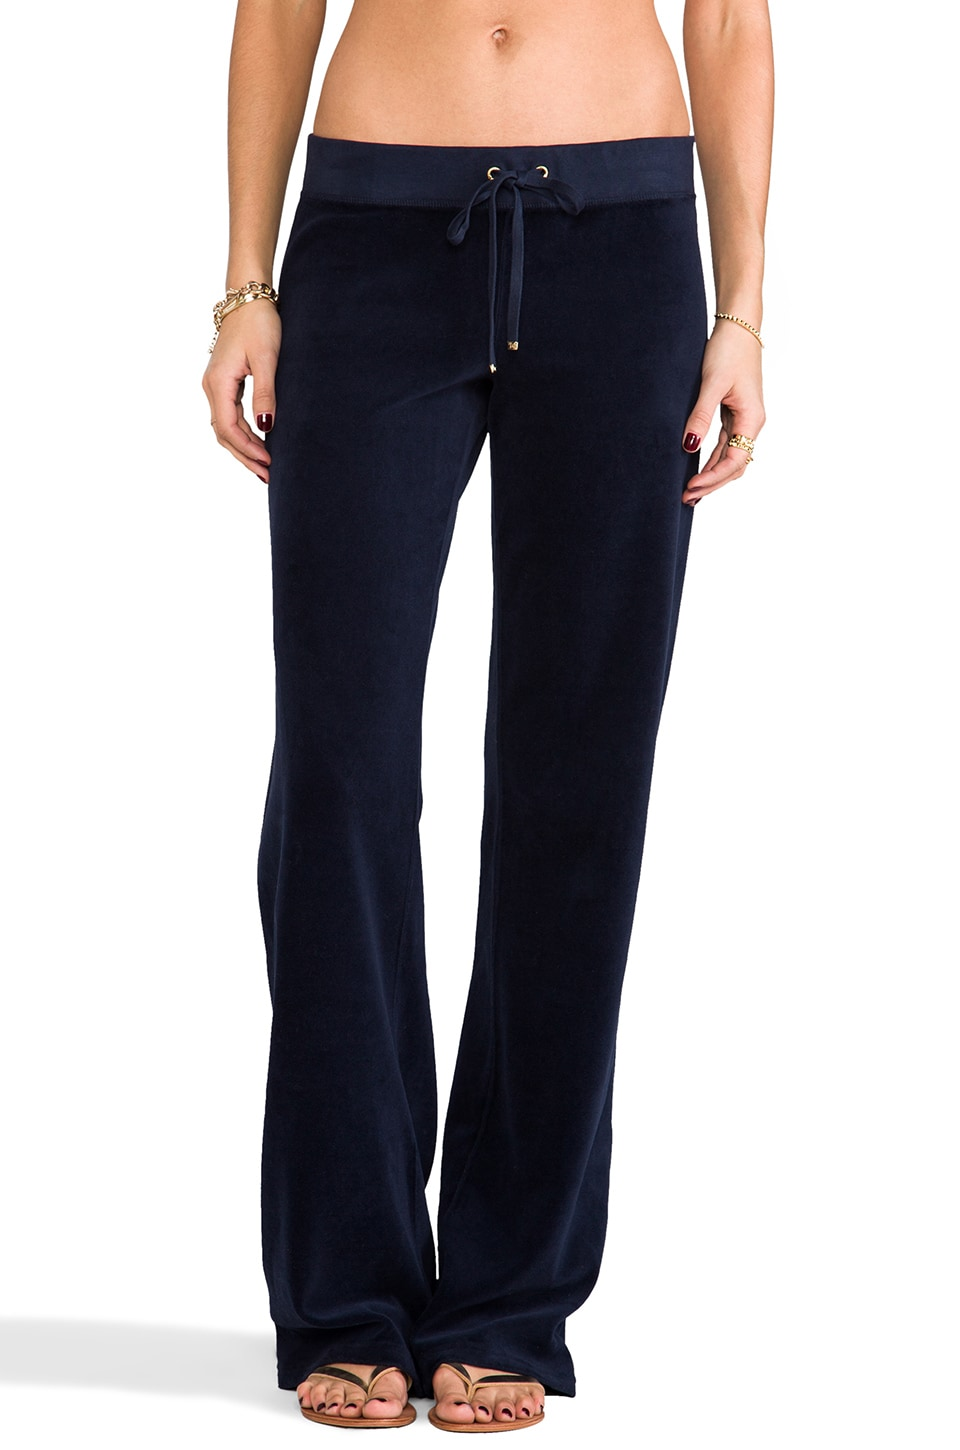 Juicy Couture Classic Velour Original Leg Pant in Regal